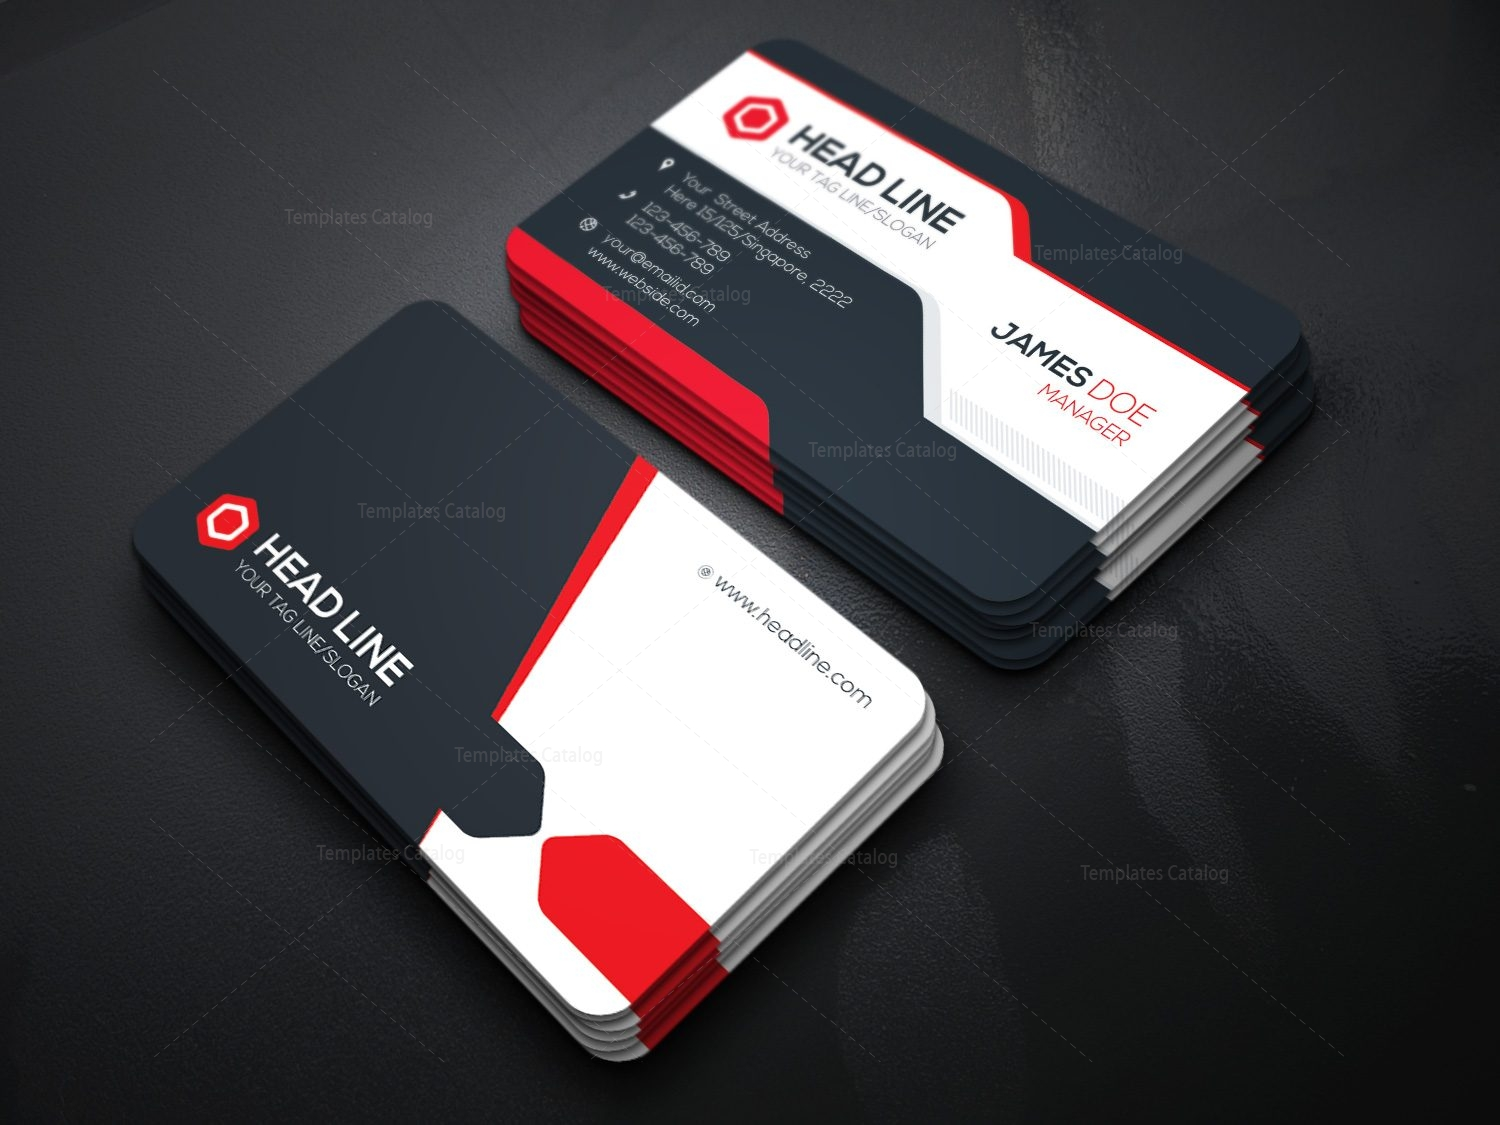 Stylish visiting card template 000085 template catalog stylish visiting card template 1 reheart Images